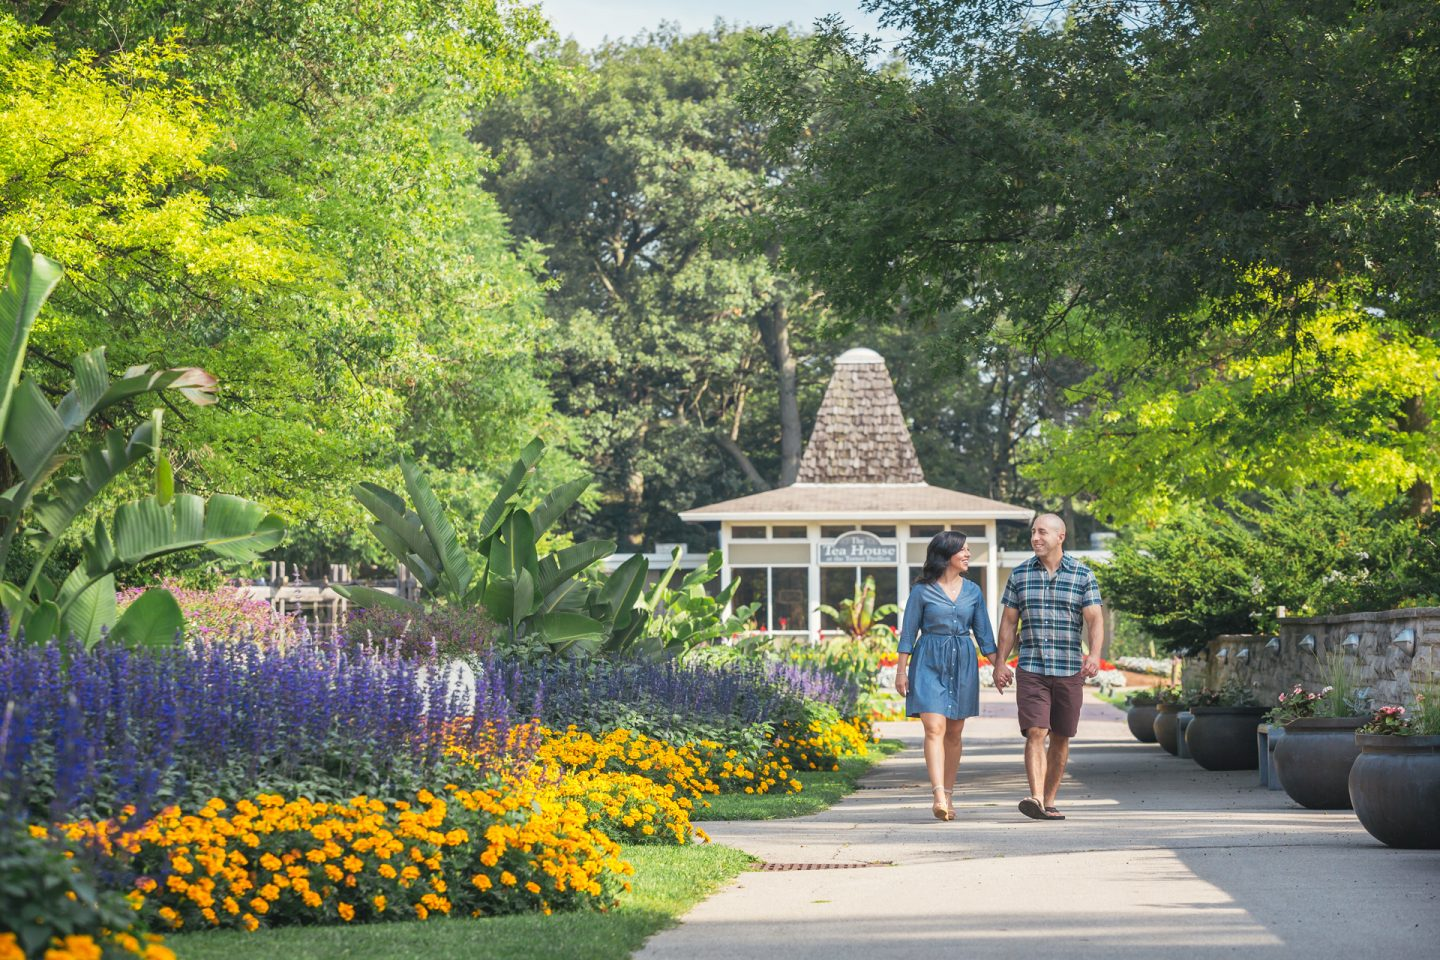 Rose Garden and Hendrie Park Experience